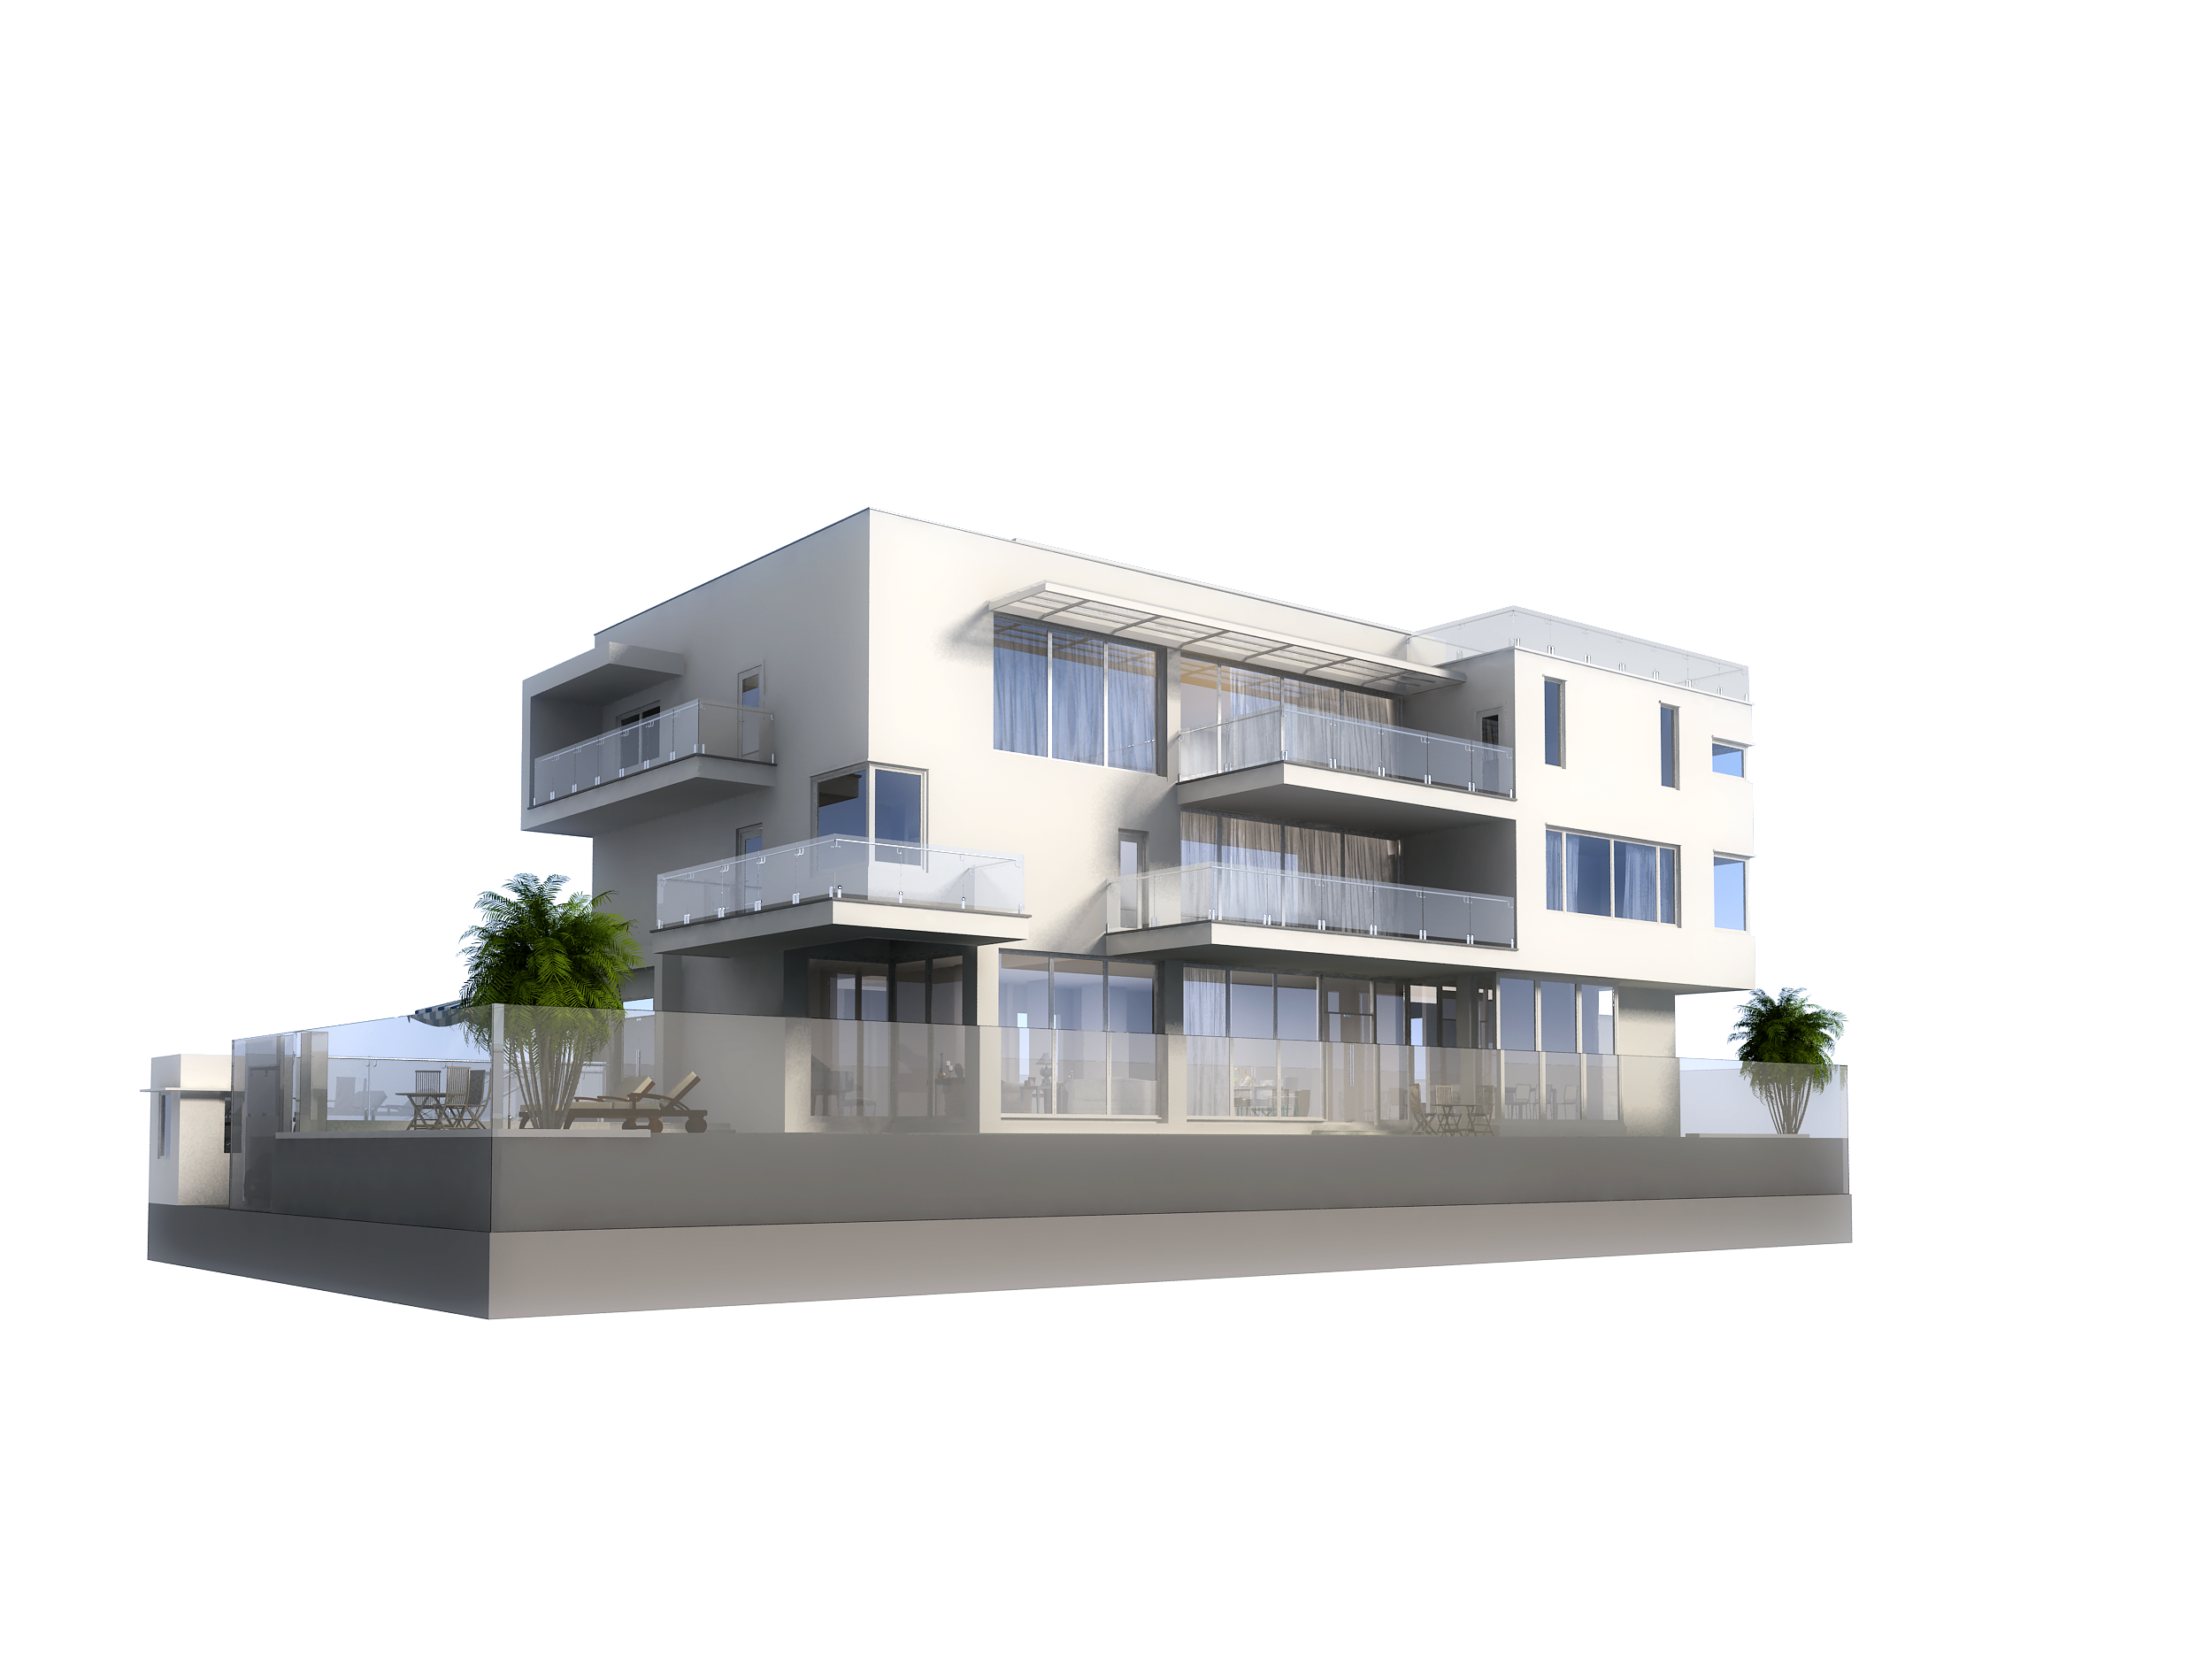 3d model luxury contemporary house with pool 3d model for Contemporary model house